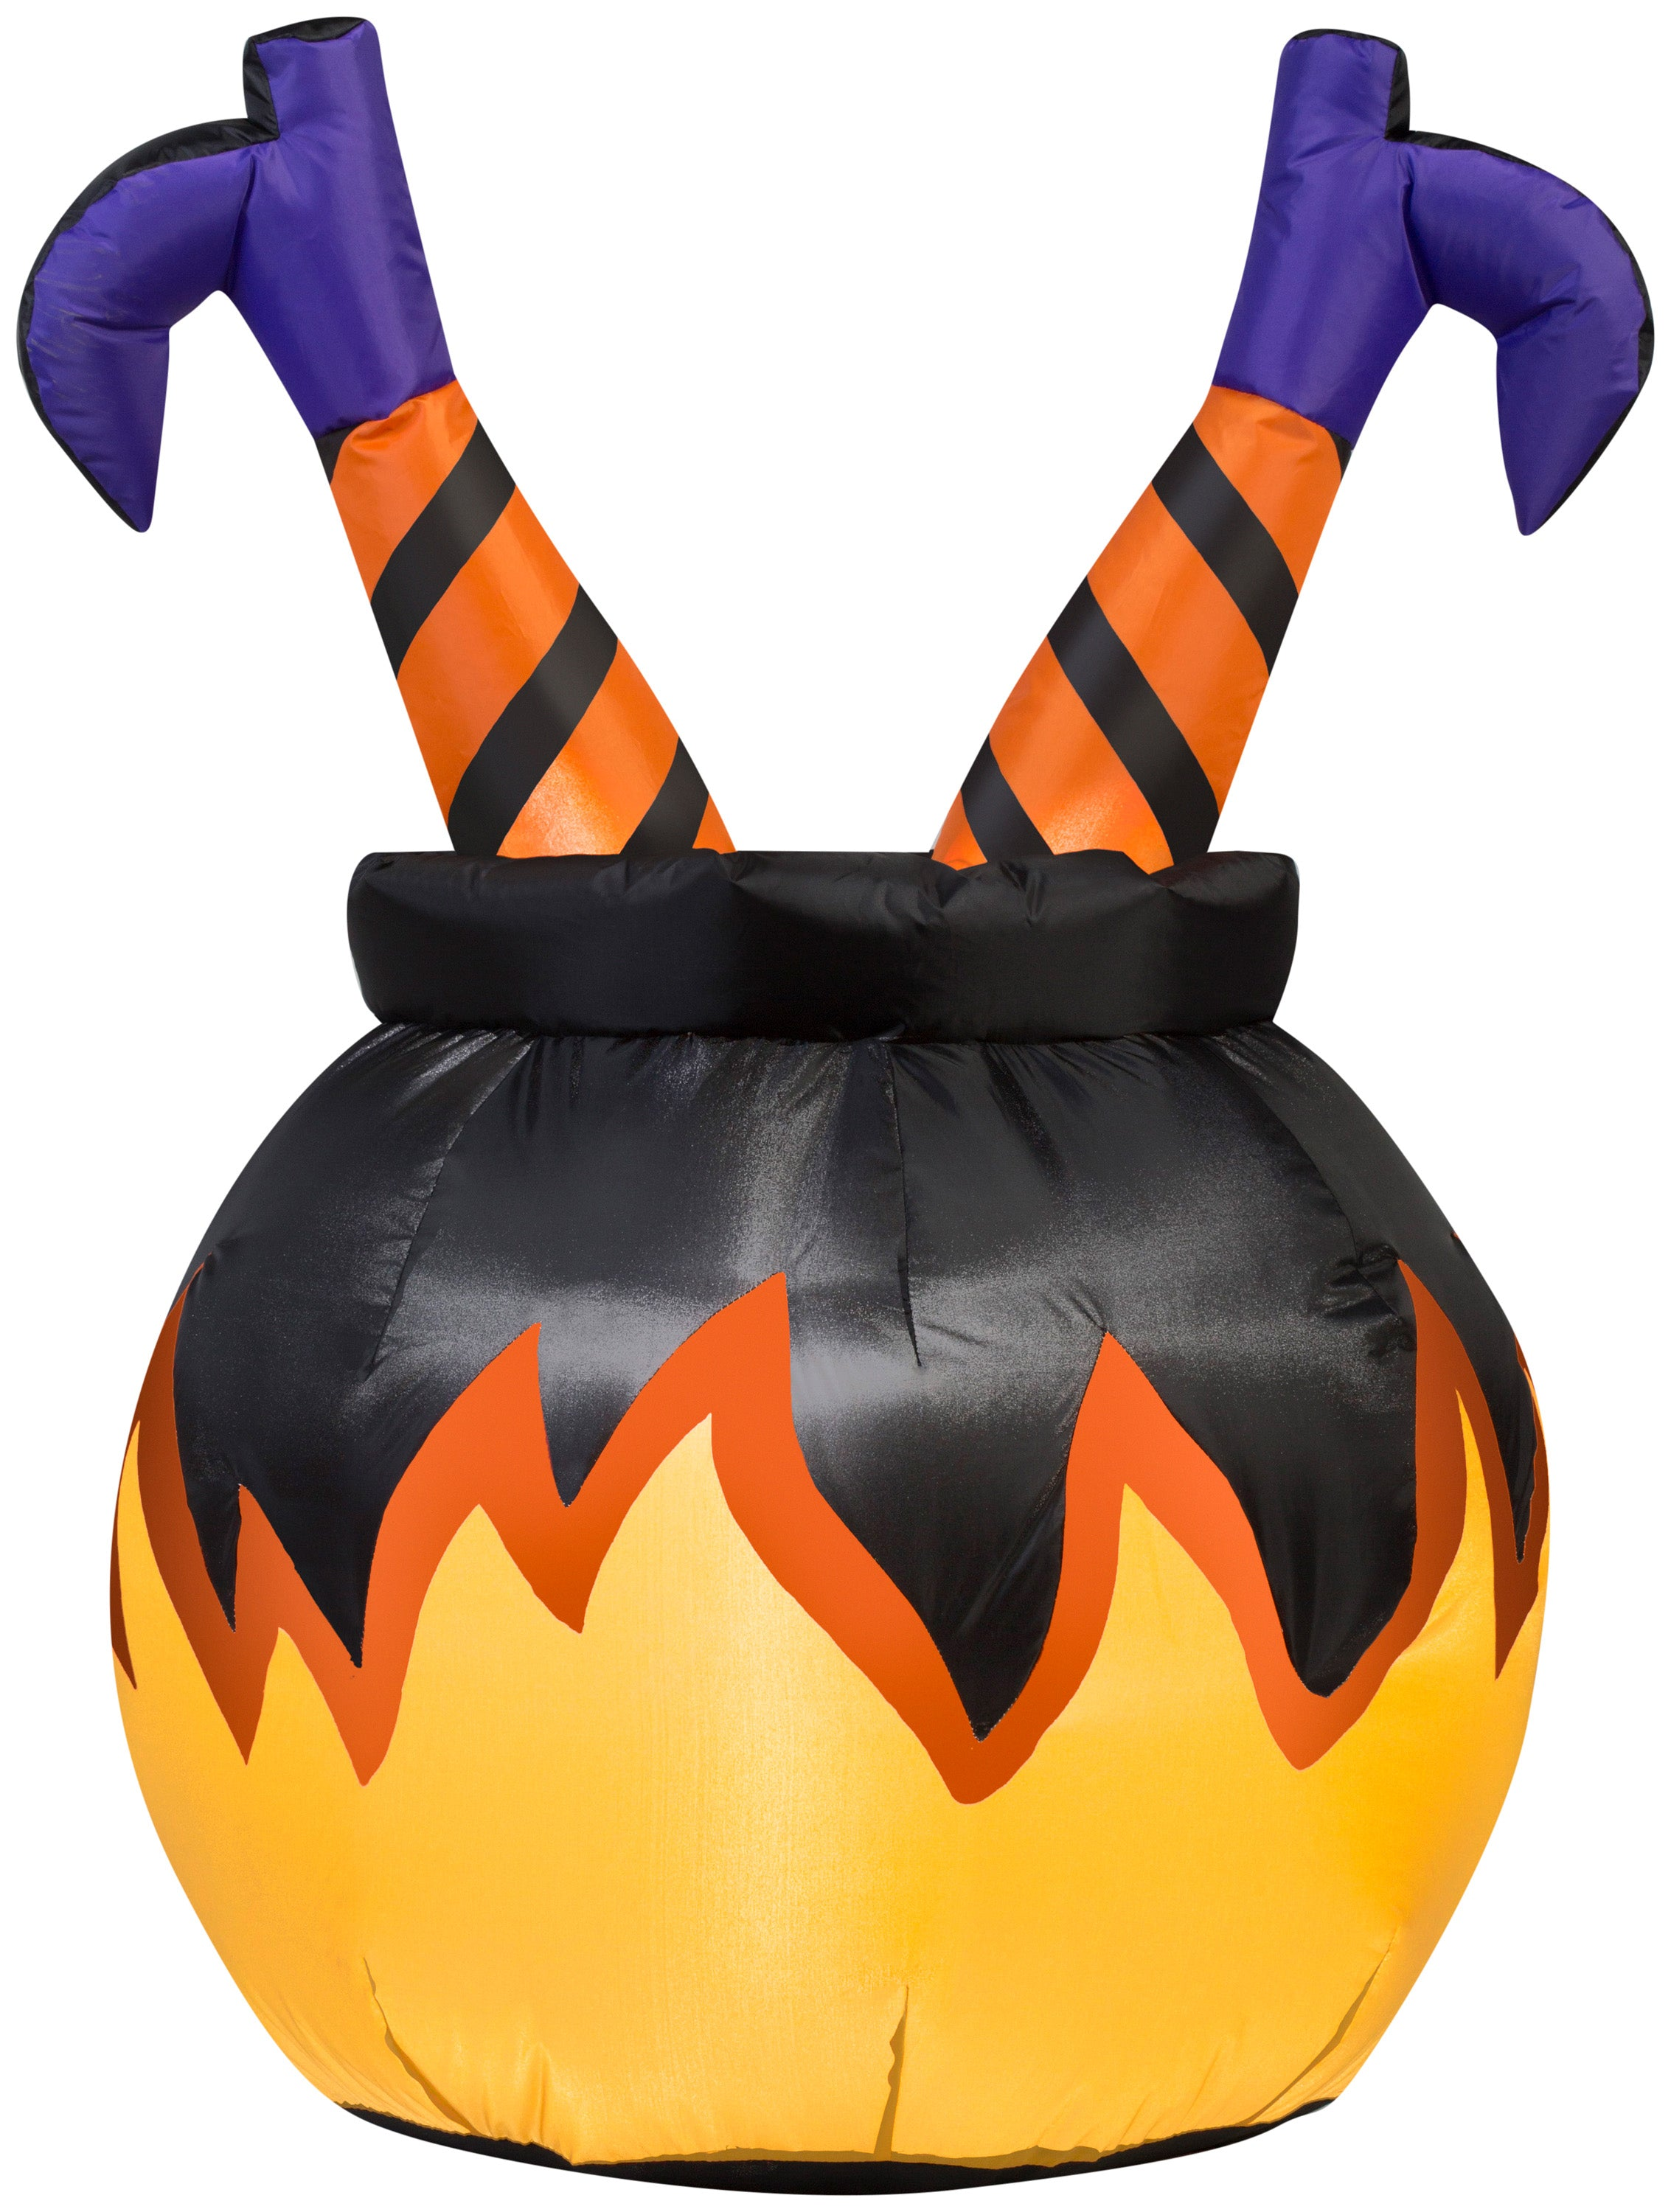 3' Airblown Witch Legs in the Cauldron Halloween Inflatables